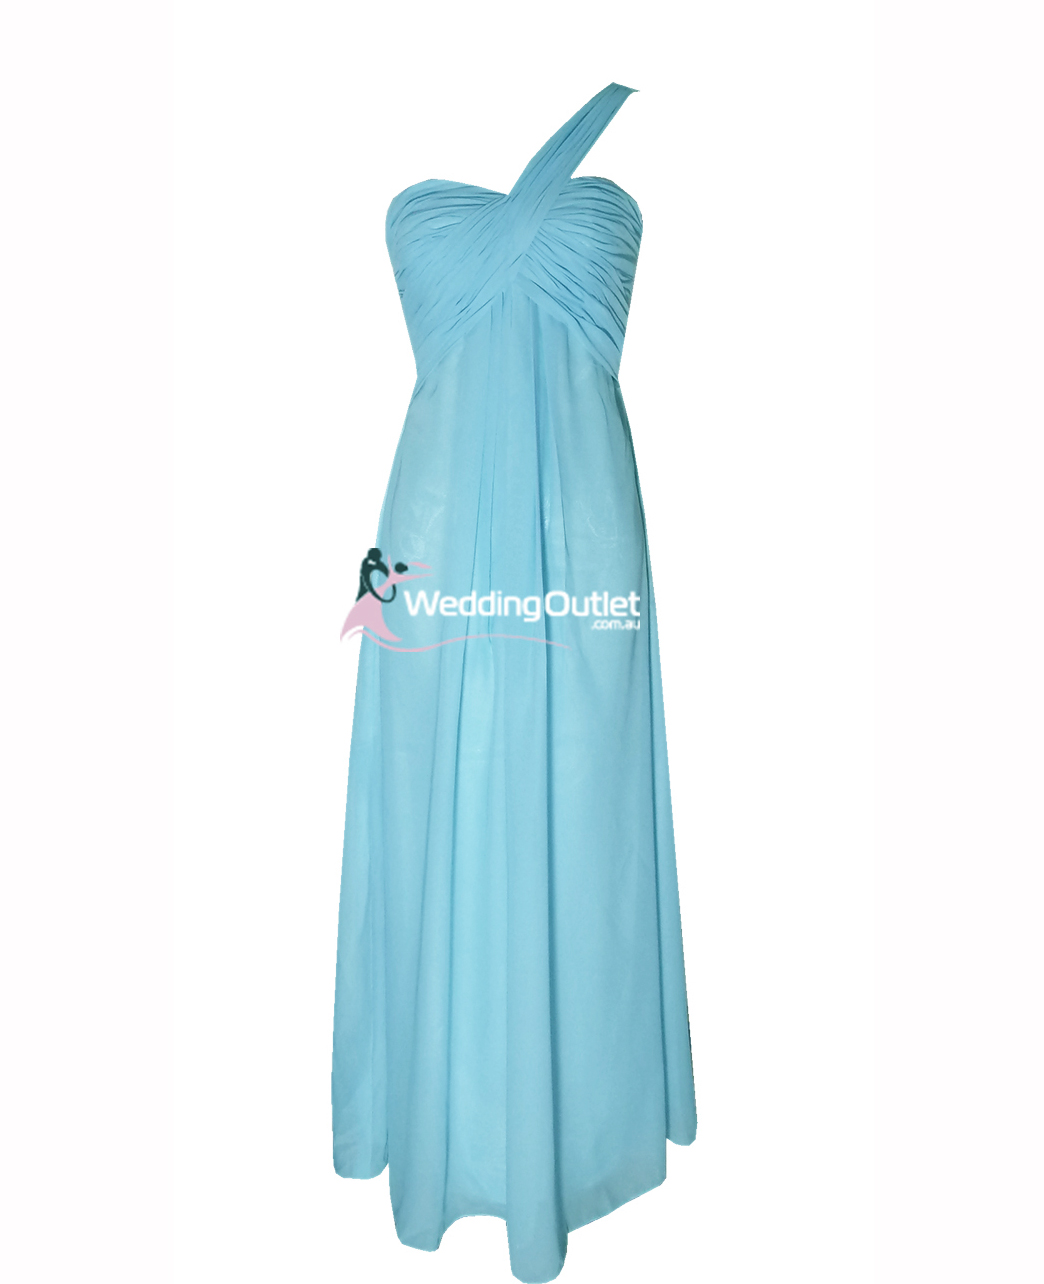 Baby blue bridesmaid dresses style f101 weddingoutlet baby blue bridesmaid dresses style f101 ombrellifo Gallery